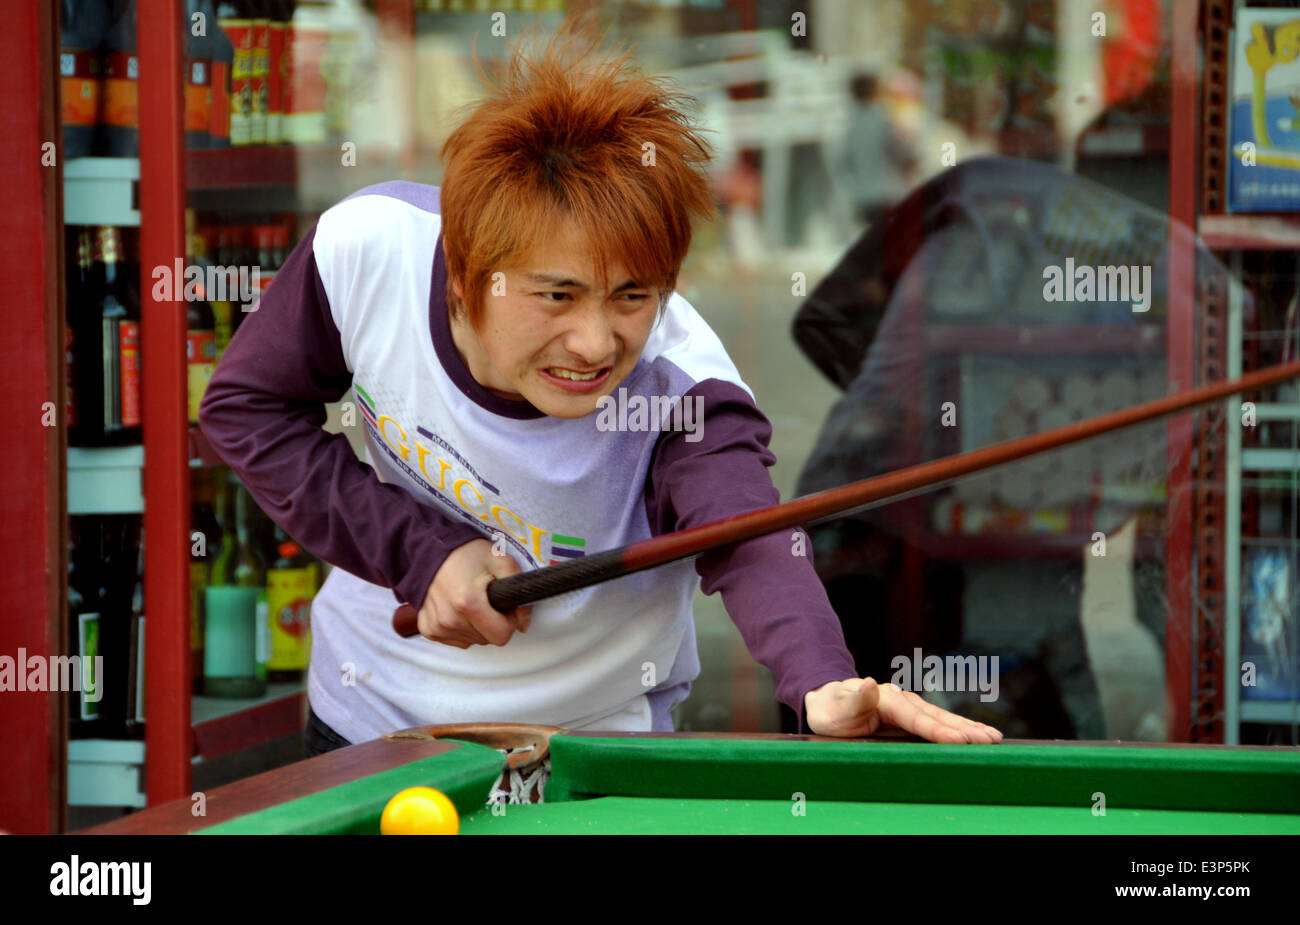 PENGZHOU, CHINA: Chinese youth with dyed red hair expresses dismay after missing a shot while playing pool - Stock Image